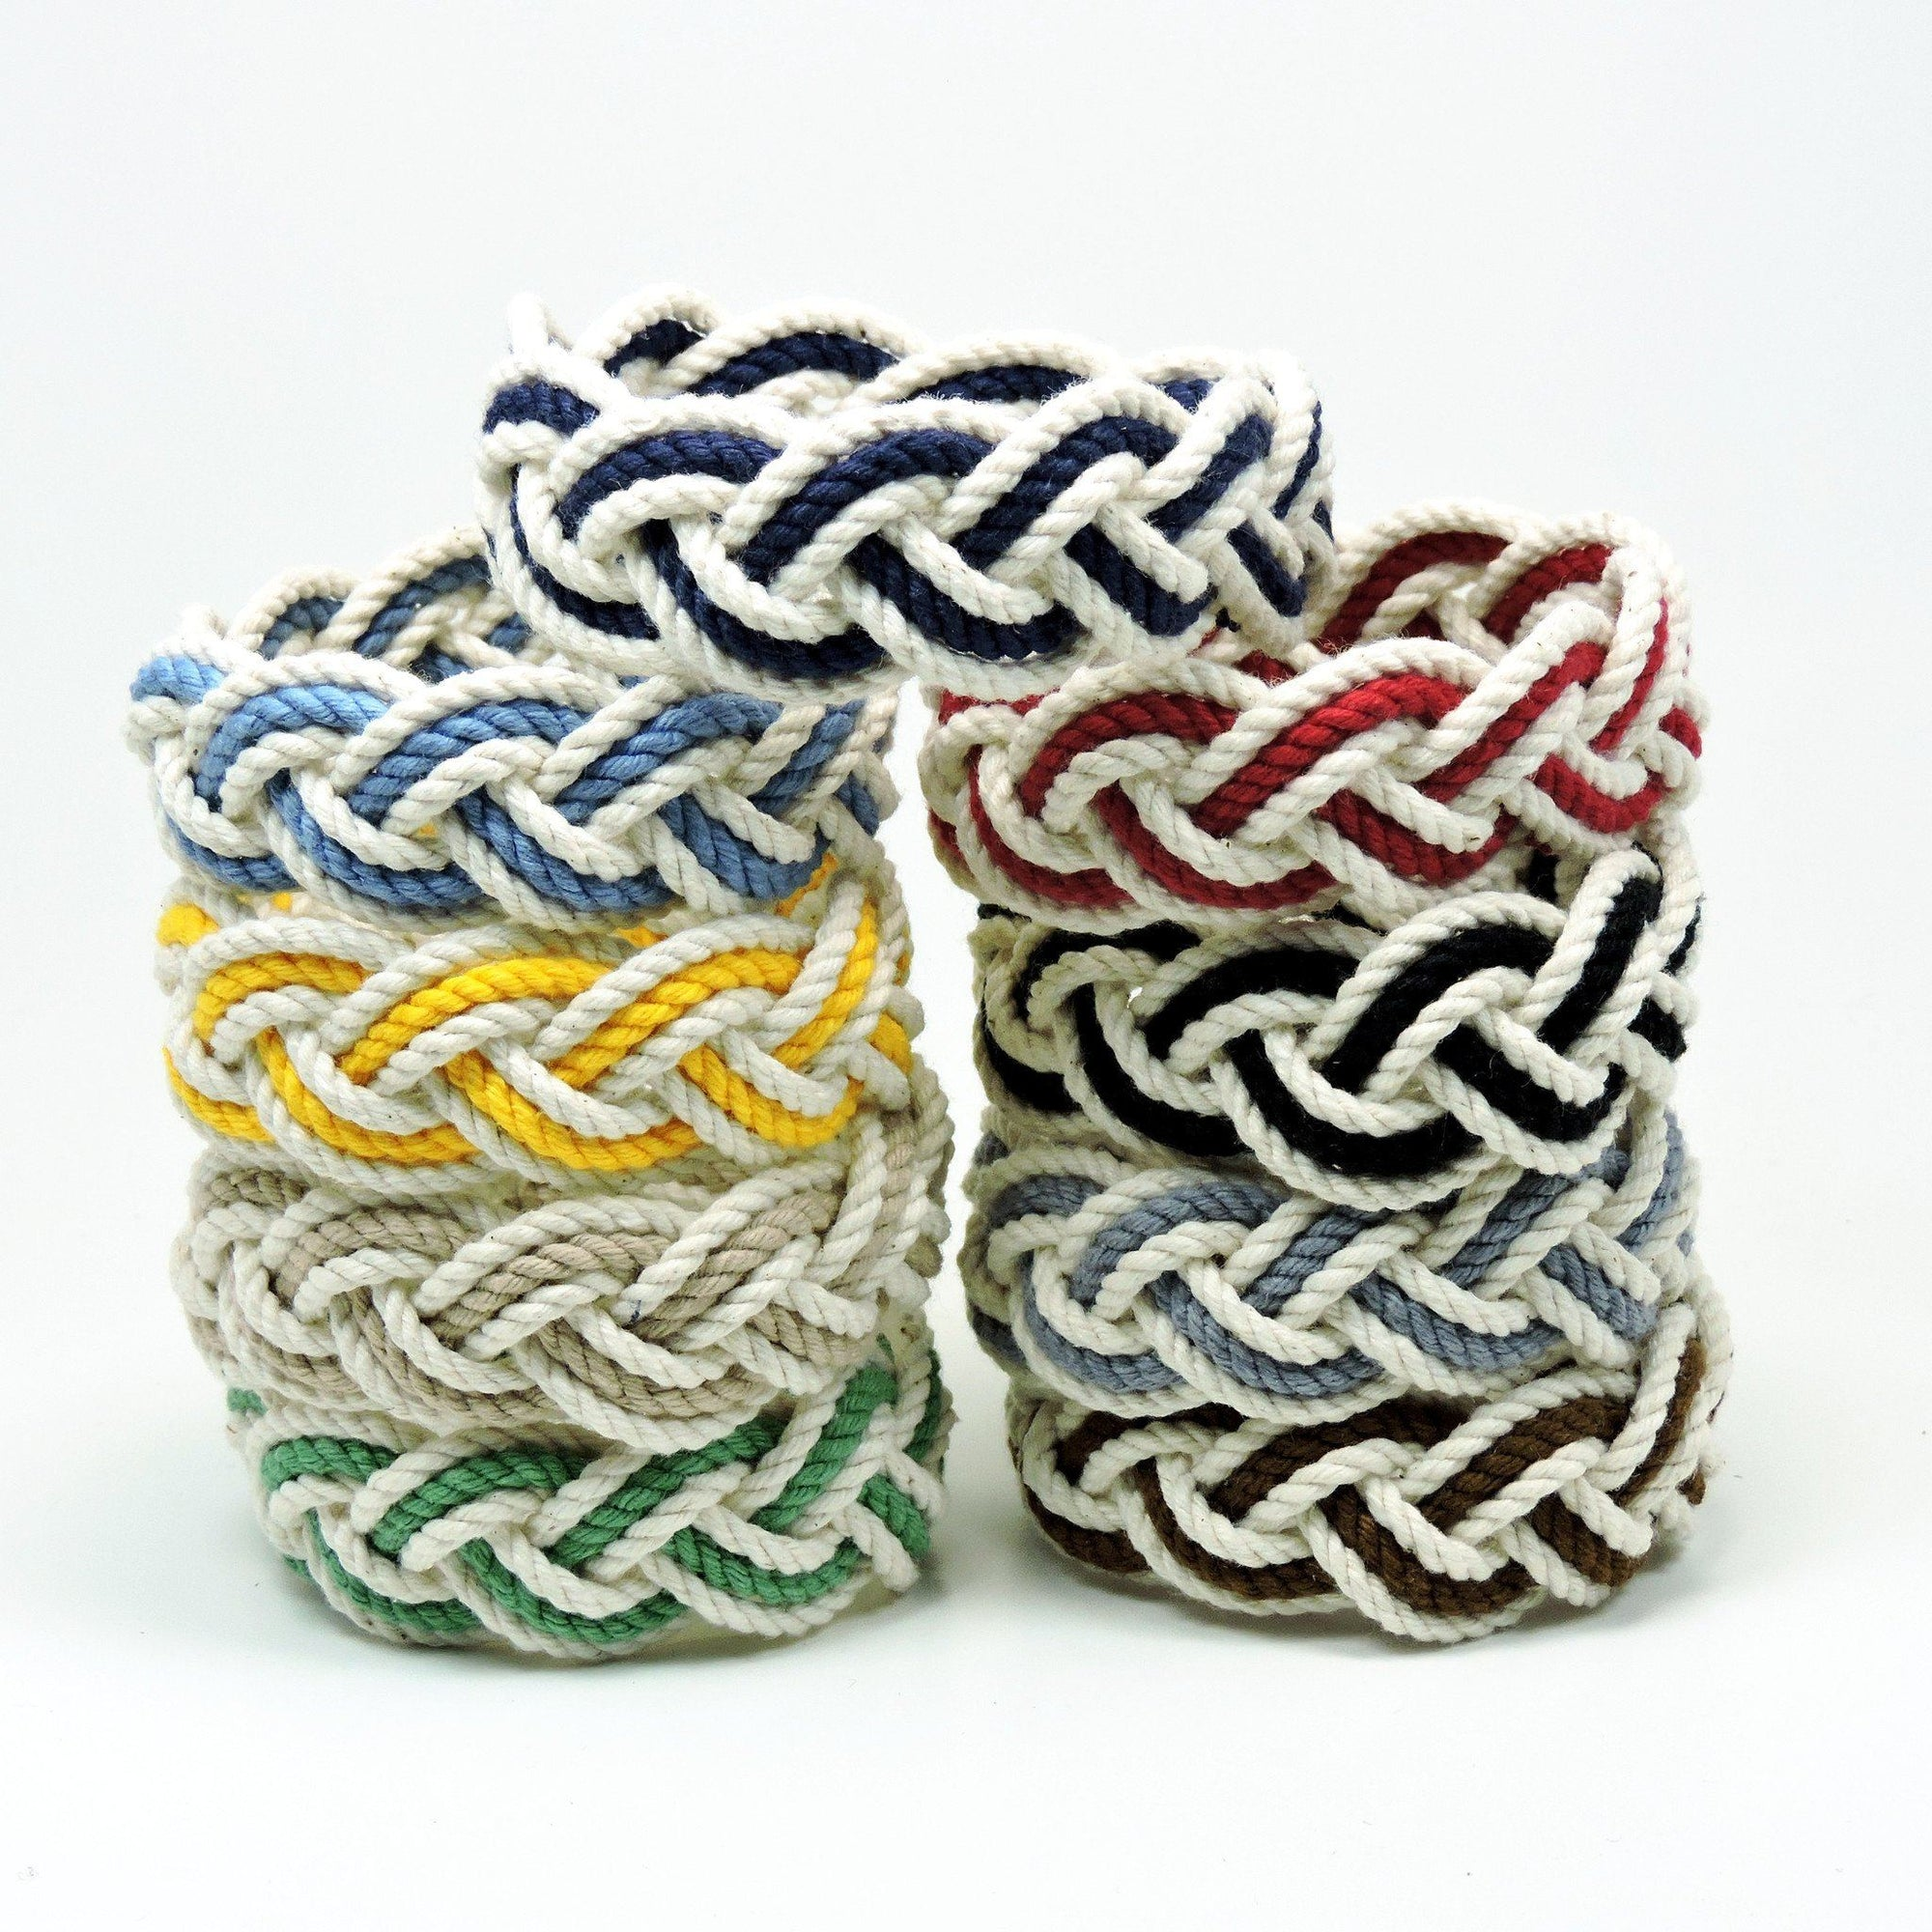 Nautical Knot Striped Sailor Bracelet, White w/ Nautical Color Stripe handmade at Mystic Knotwork